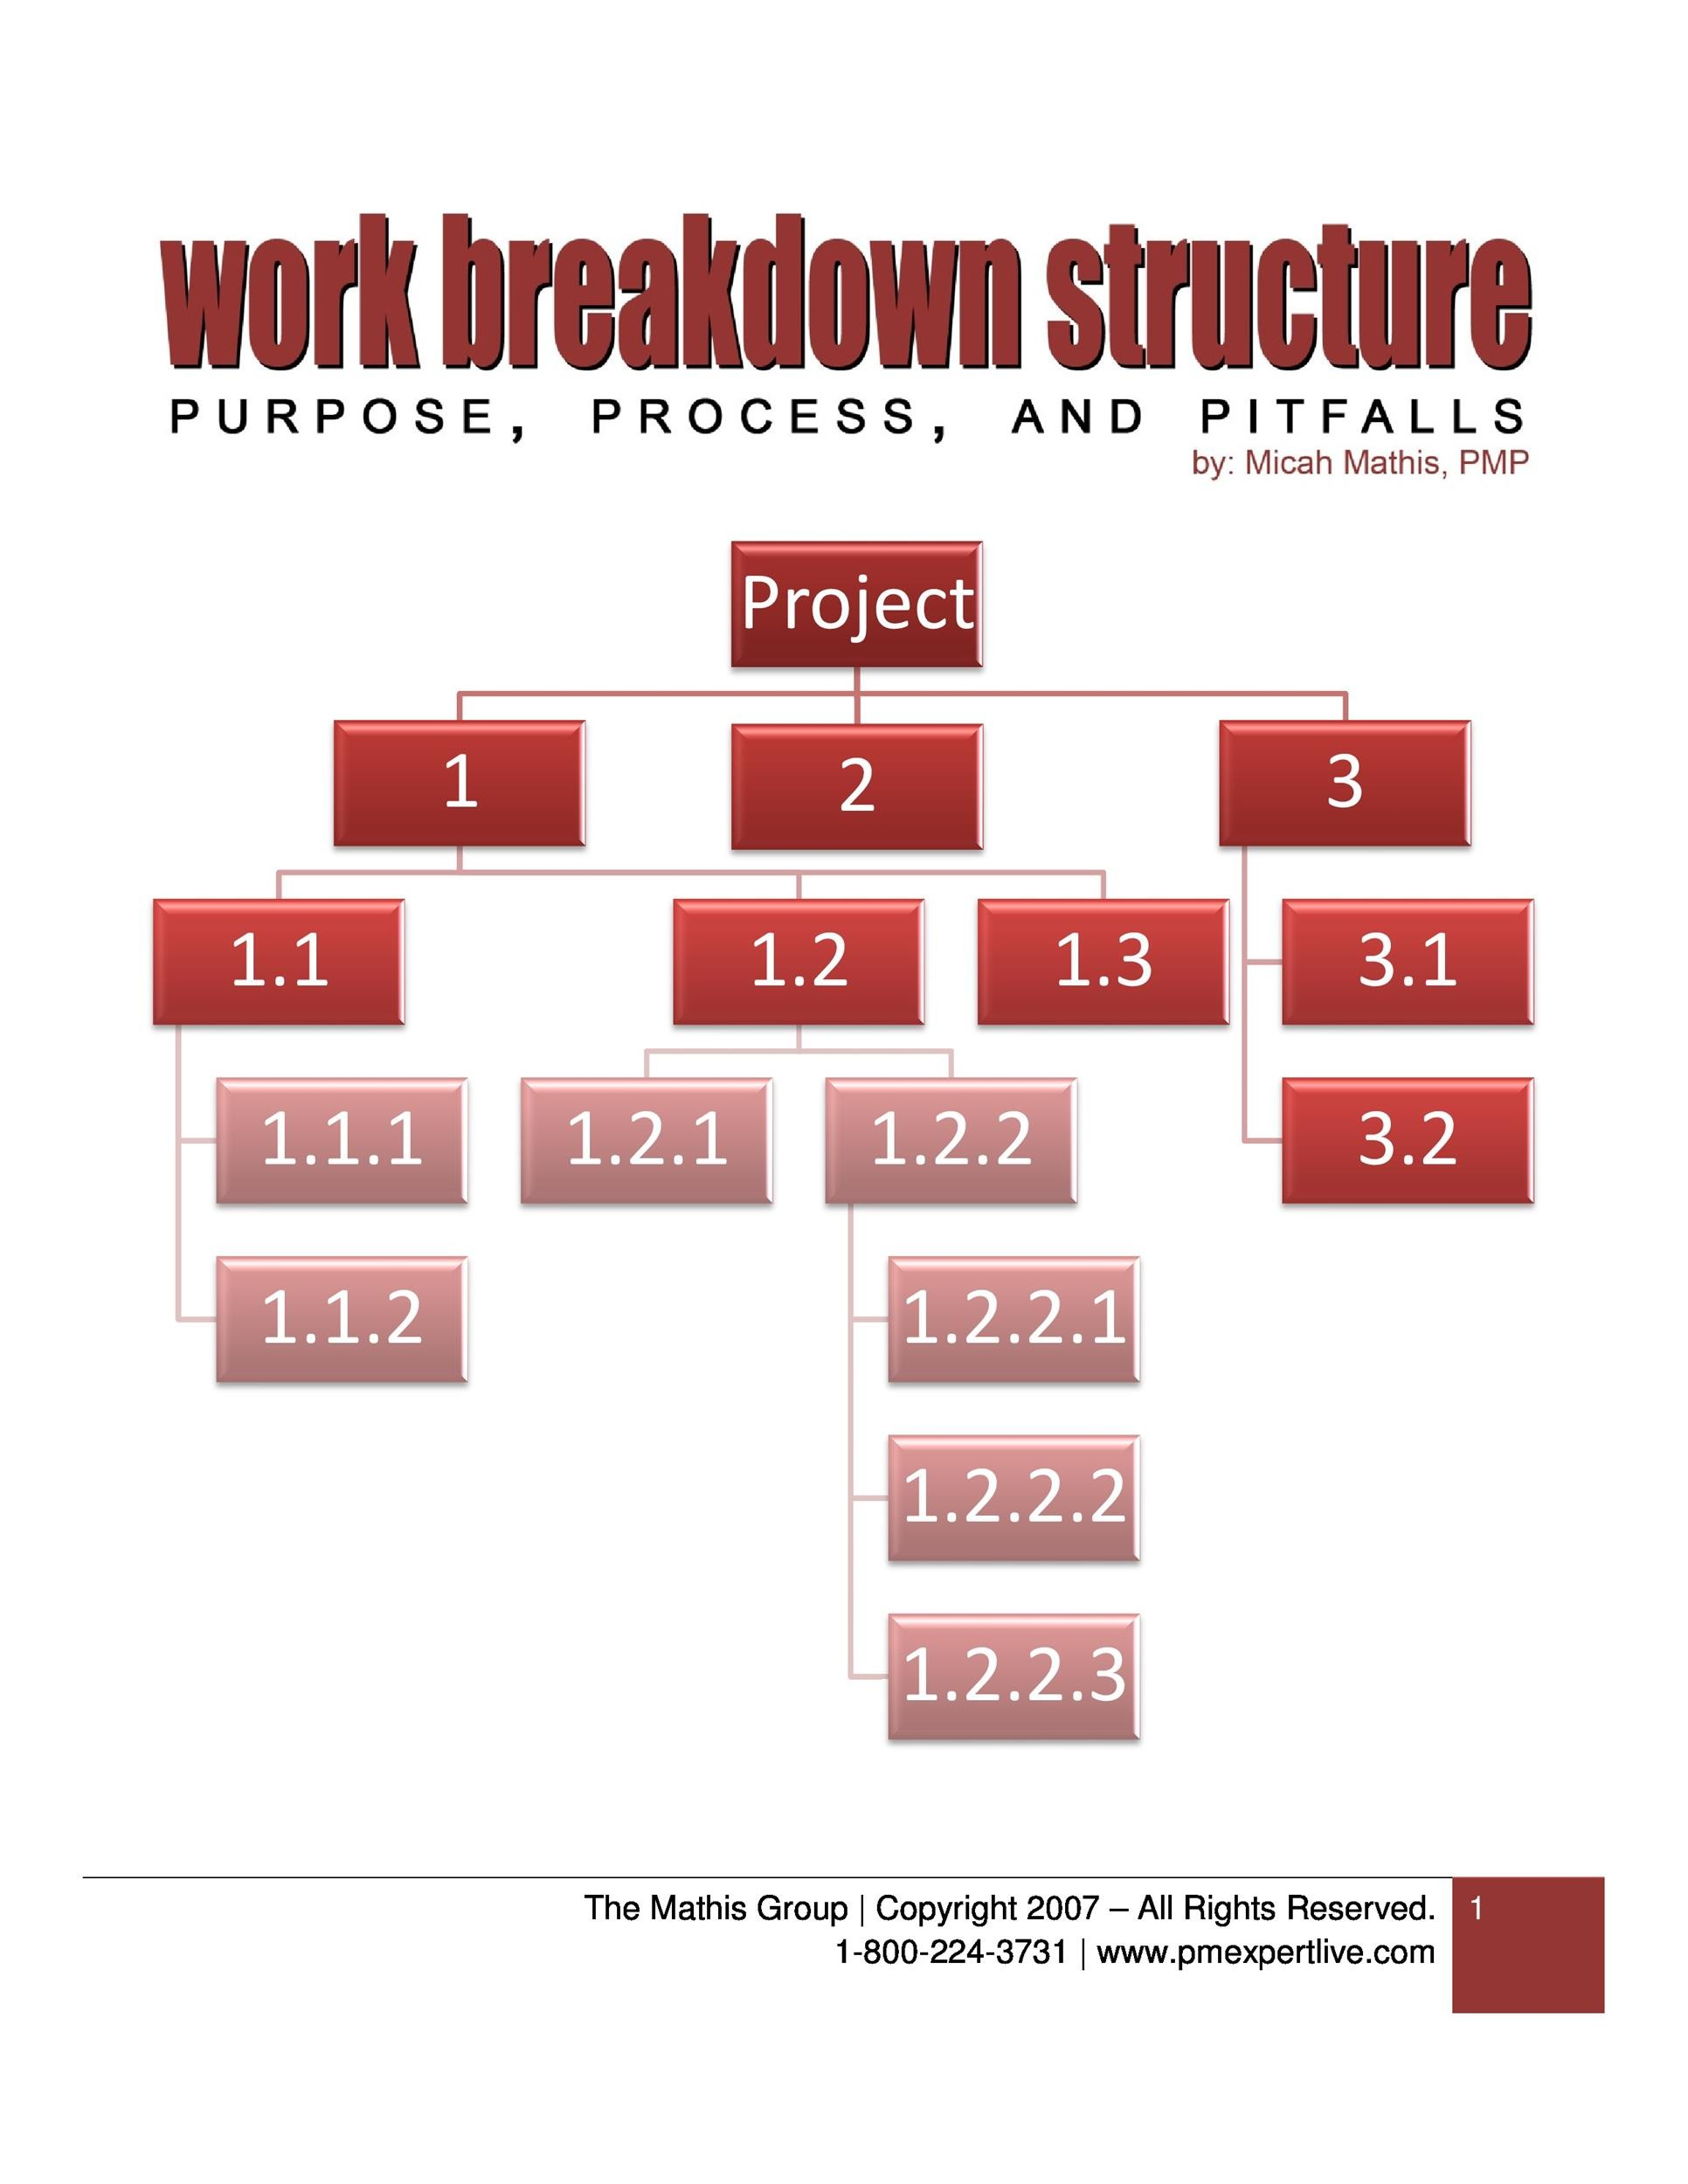 30 work breakdown structure templates free template lab printable work breakdown structure template 22 ccuart Images